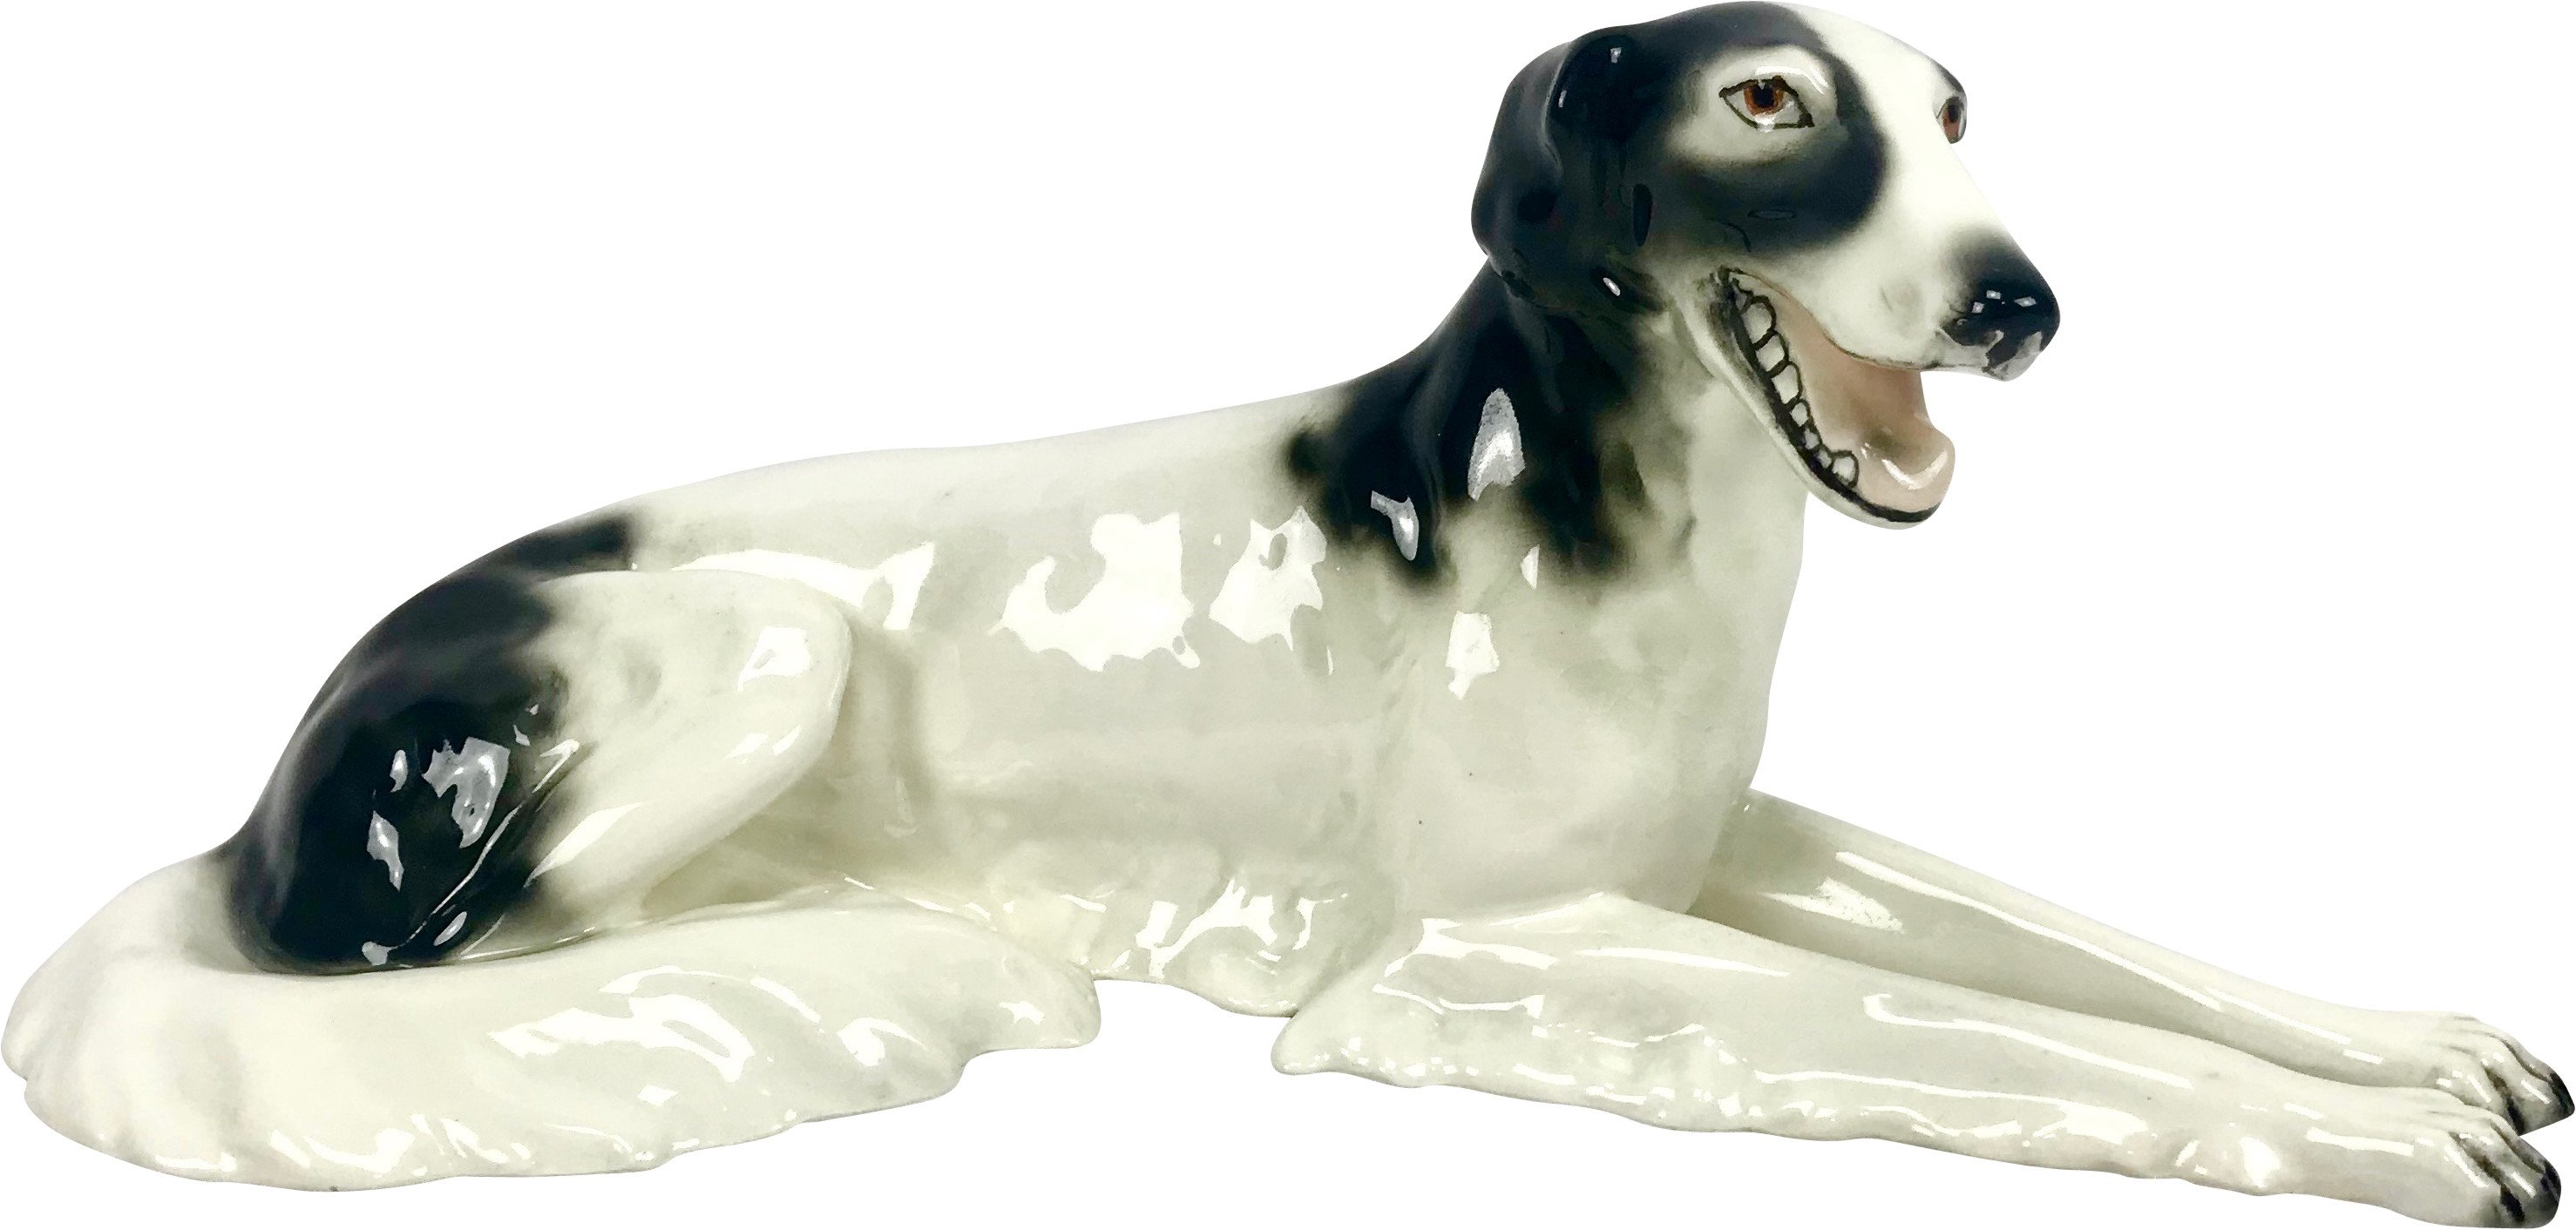 Dog Figurine, Royal Dux Bohemia, Czechoslovakia, 1920s